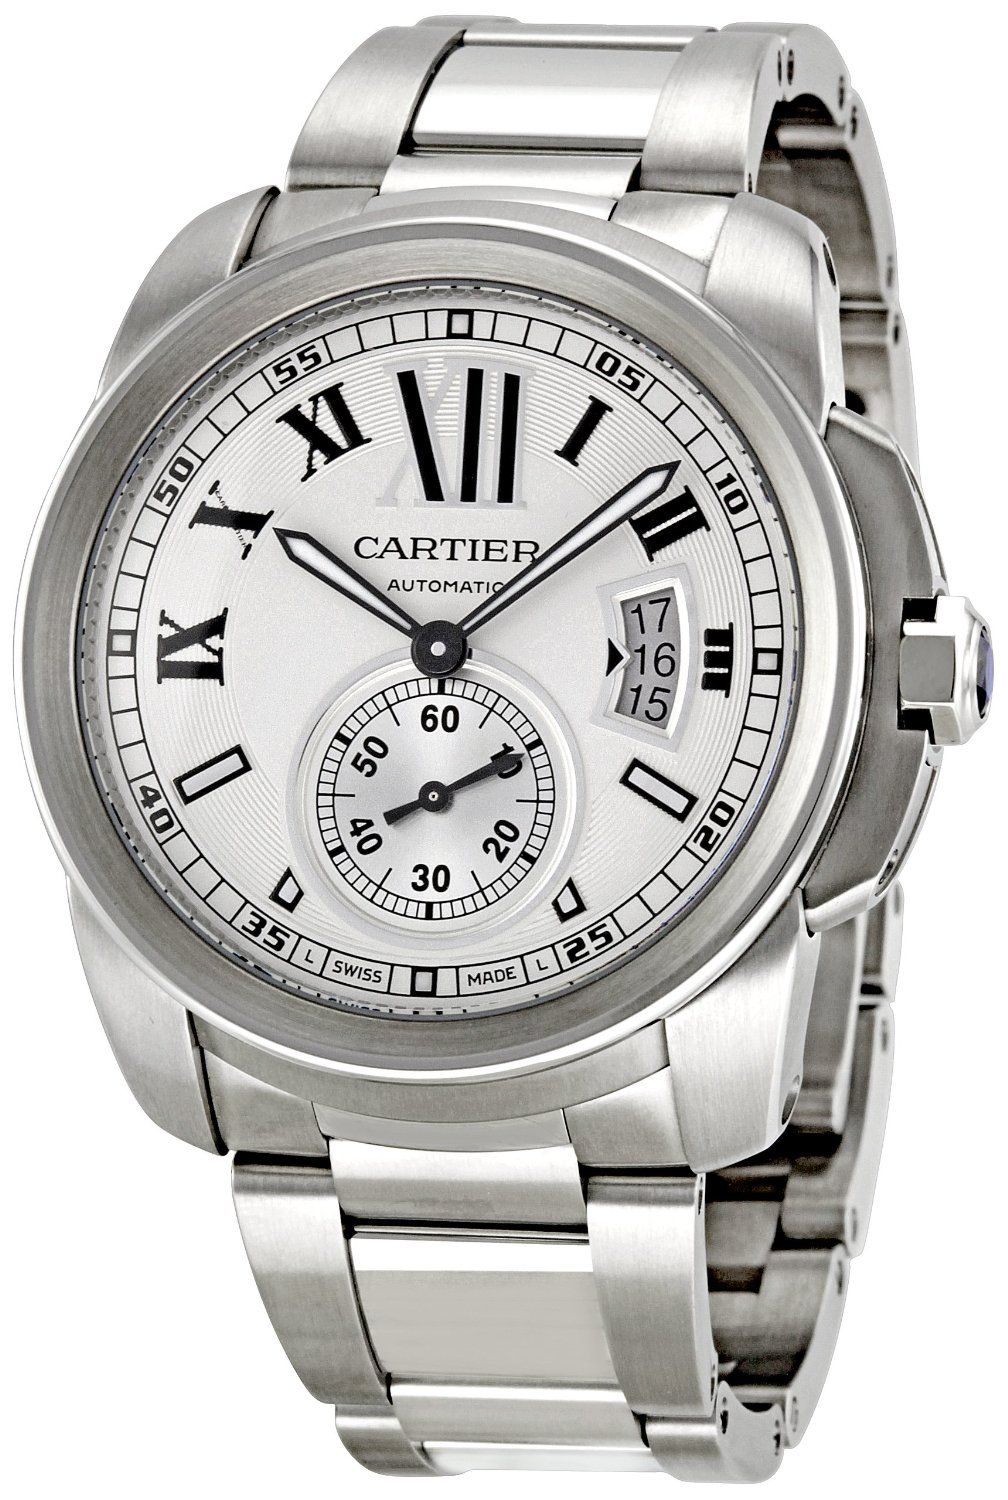 cartier w7100015 calibre de cartier watch cartier men s calibre de cartier silver opaline dial watch features case material stainless steel bracelet material stainless steel